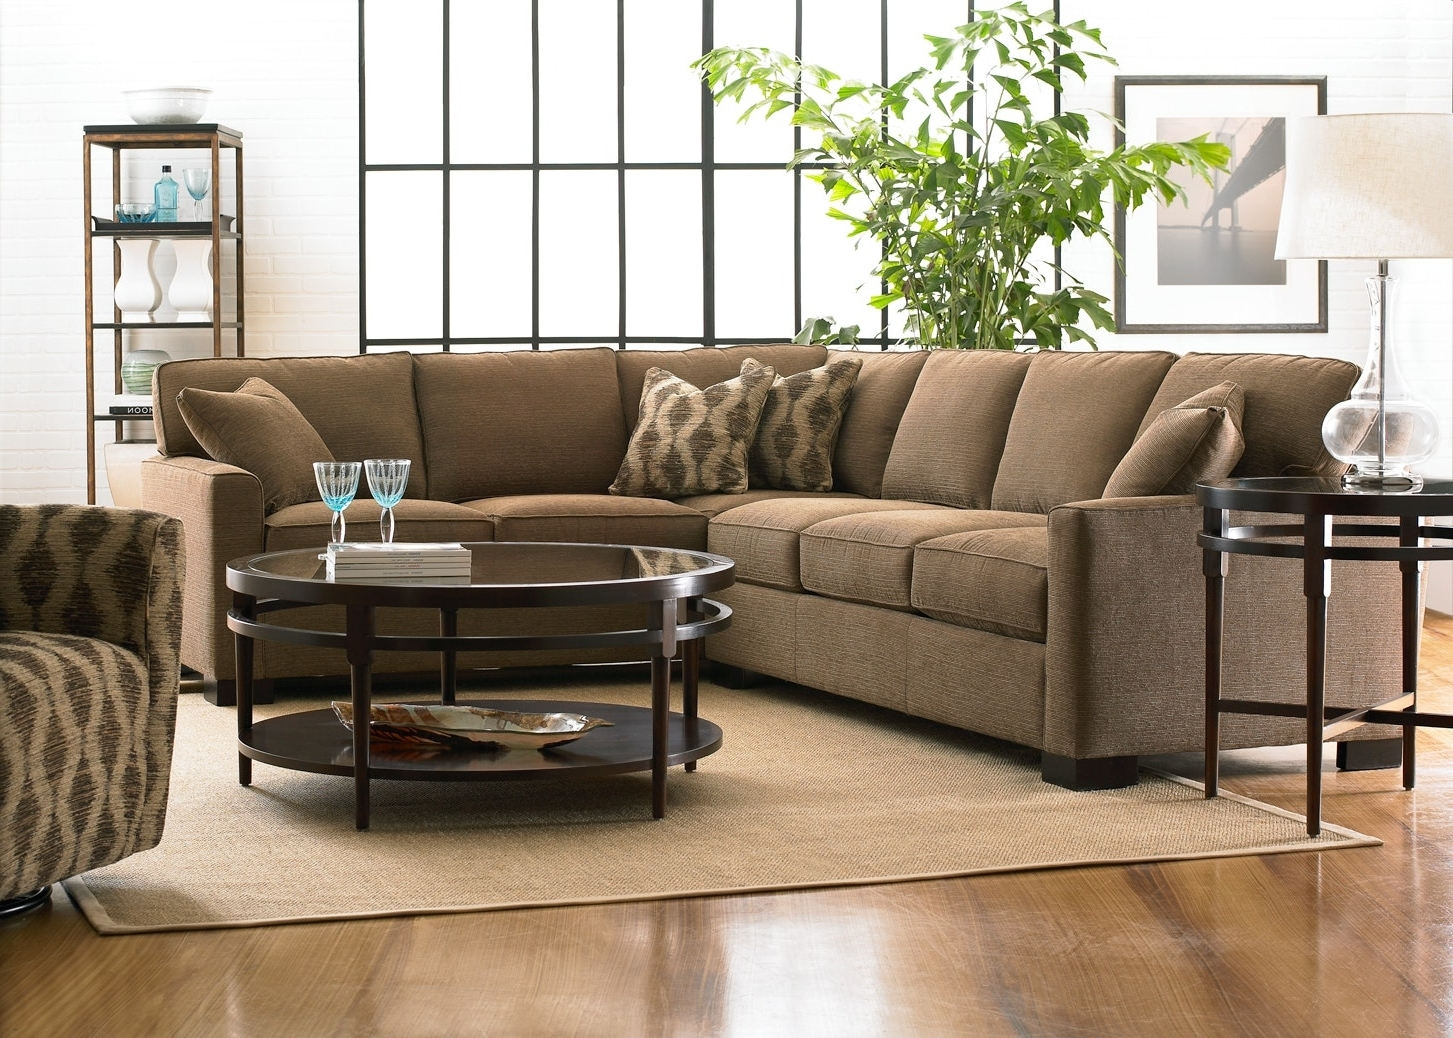 Modern Sectional Sofas For Small Spaces Throughout Most Current Grey Modern Sectional Modern Sectional Couches Modern Sectional (View 10 of 15)